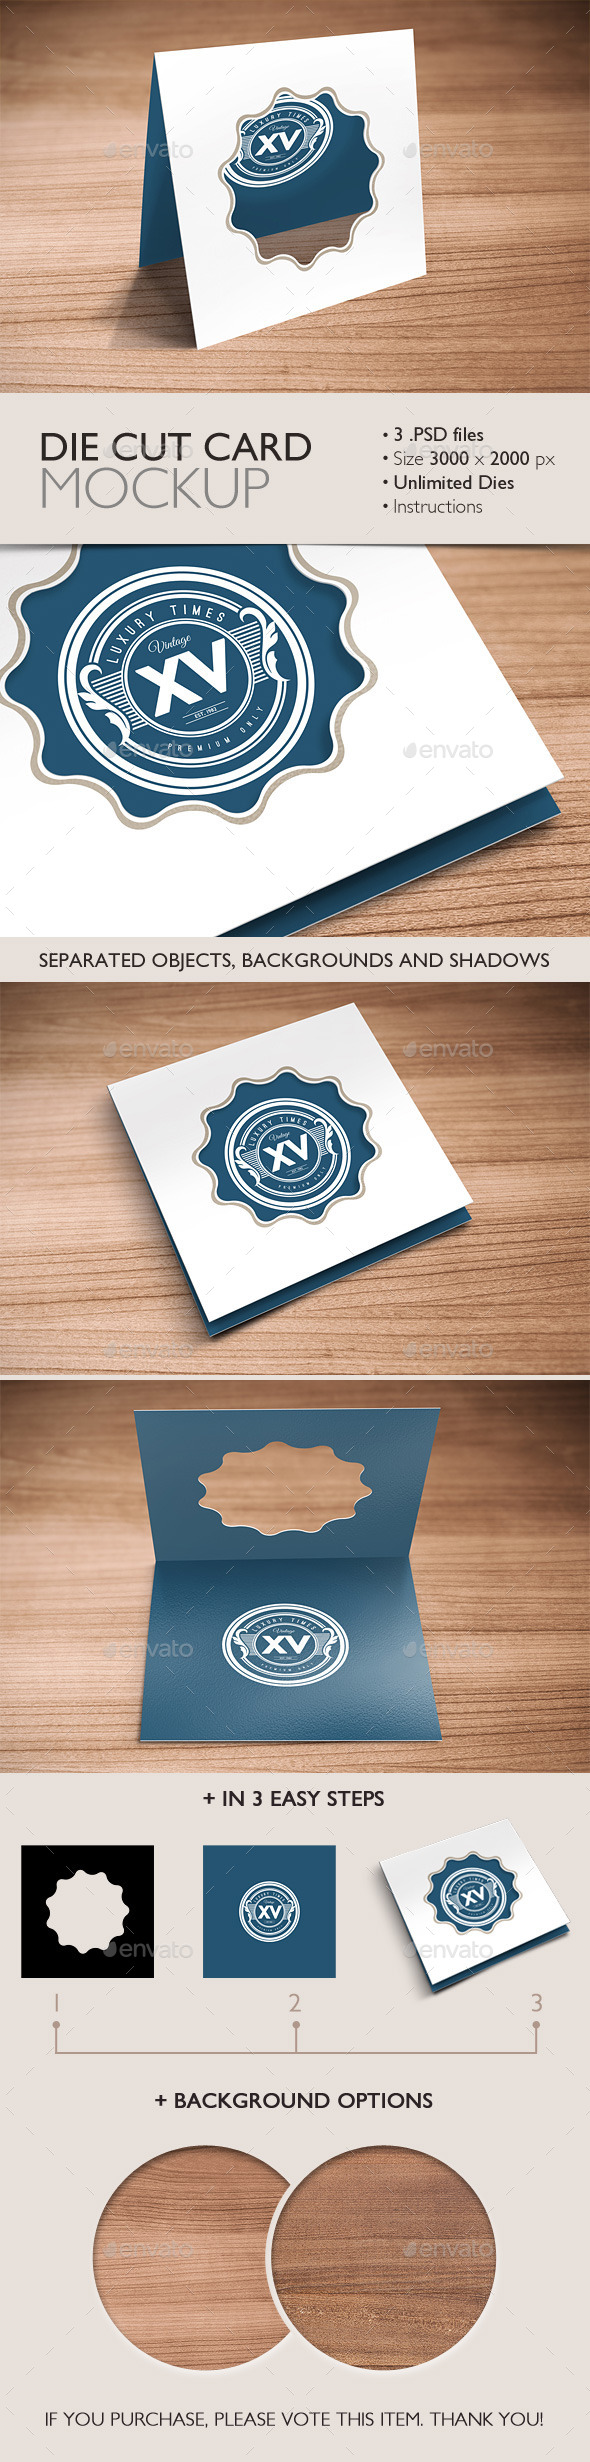 Die Cut Card Mockup